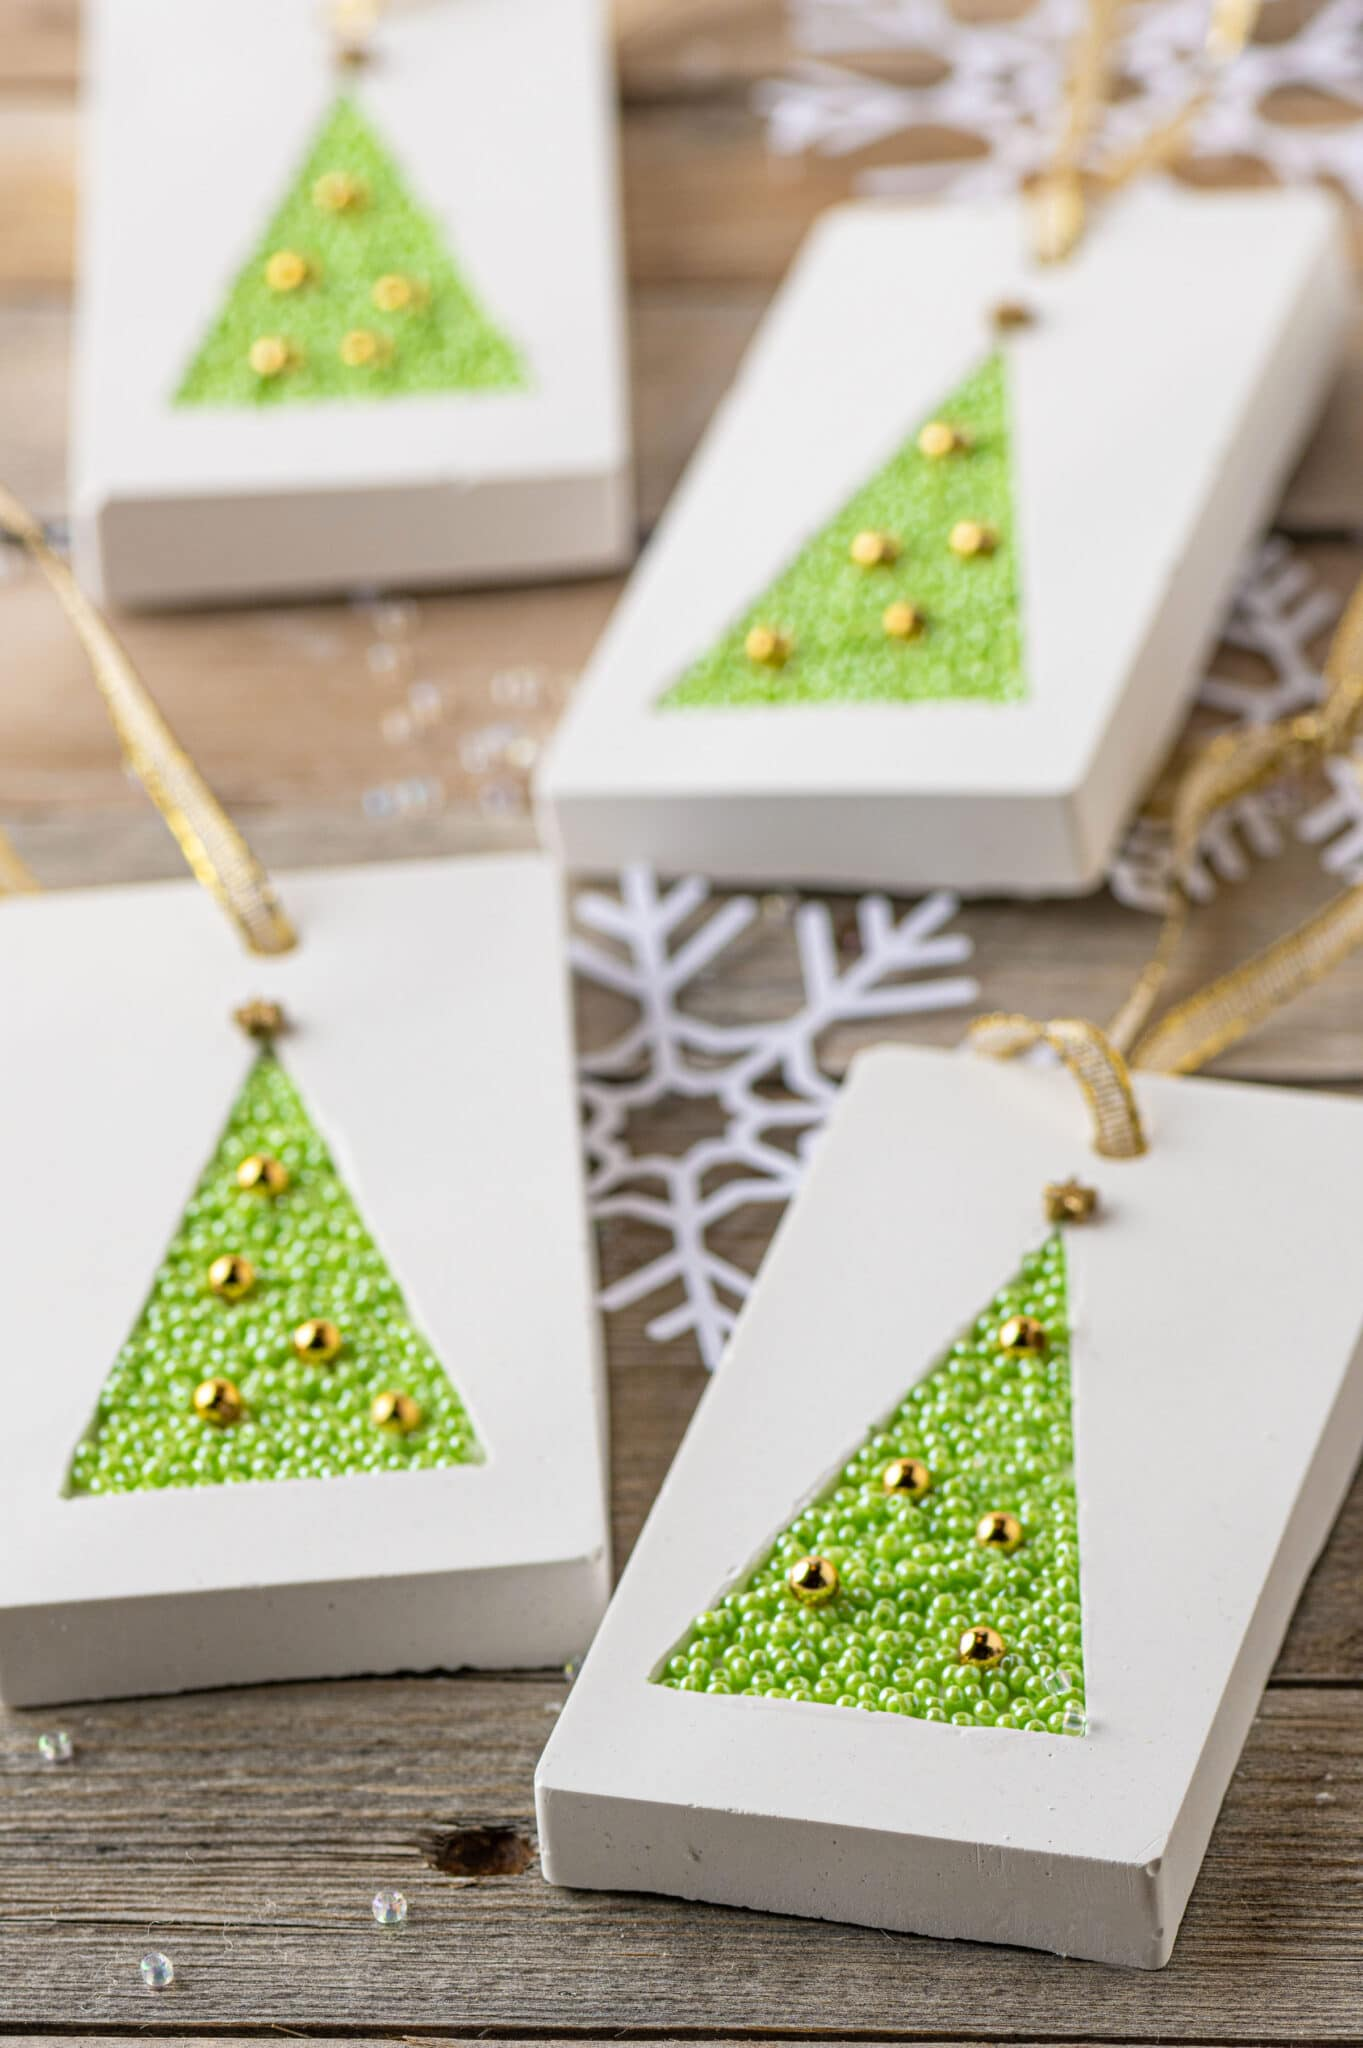 Handmade gift tag made from plaster and inlayed with small green beads.  Surrounded by white paper snowflakes and clear glass beads